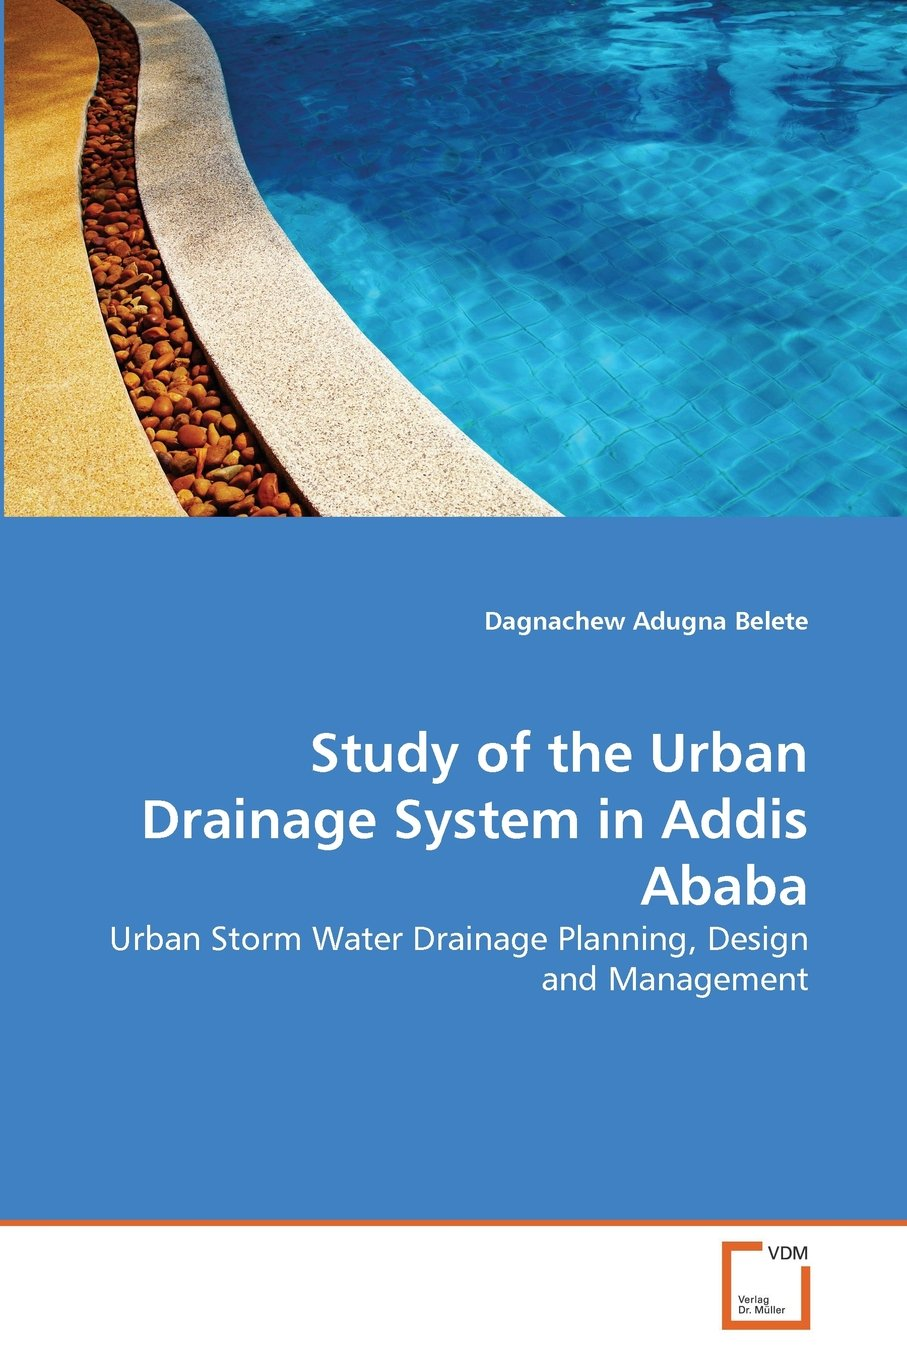 Study of the Urban Drainage System in Addis Ababa: Urban